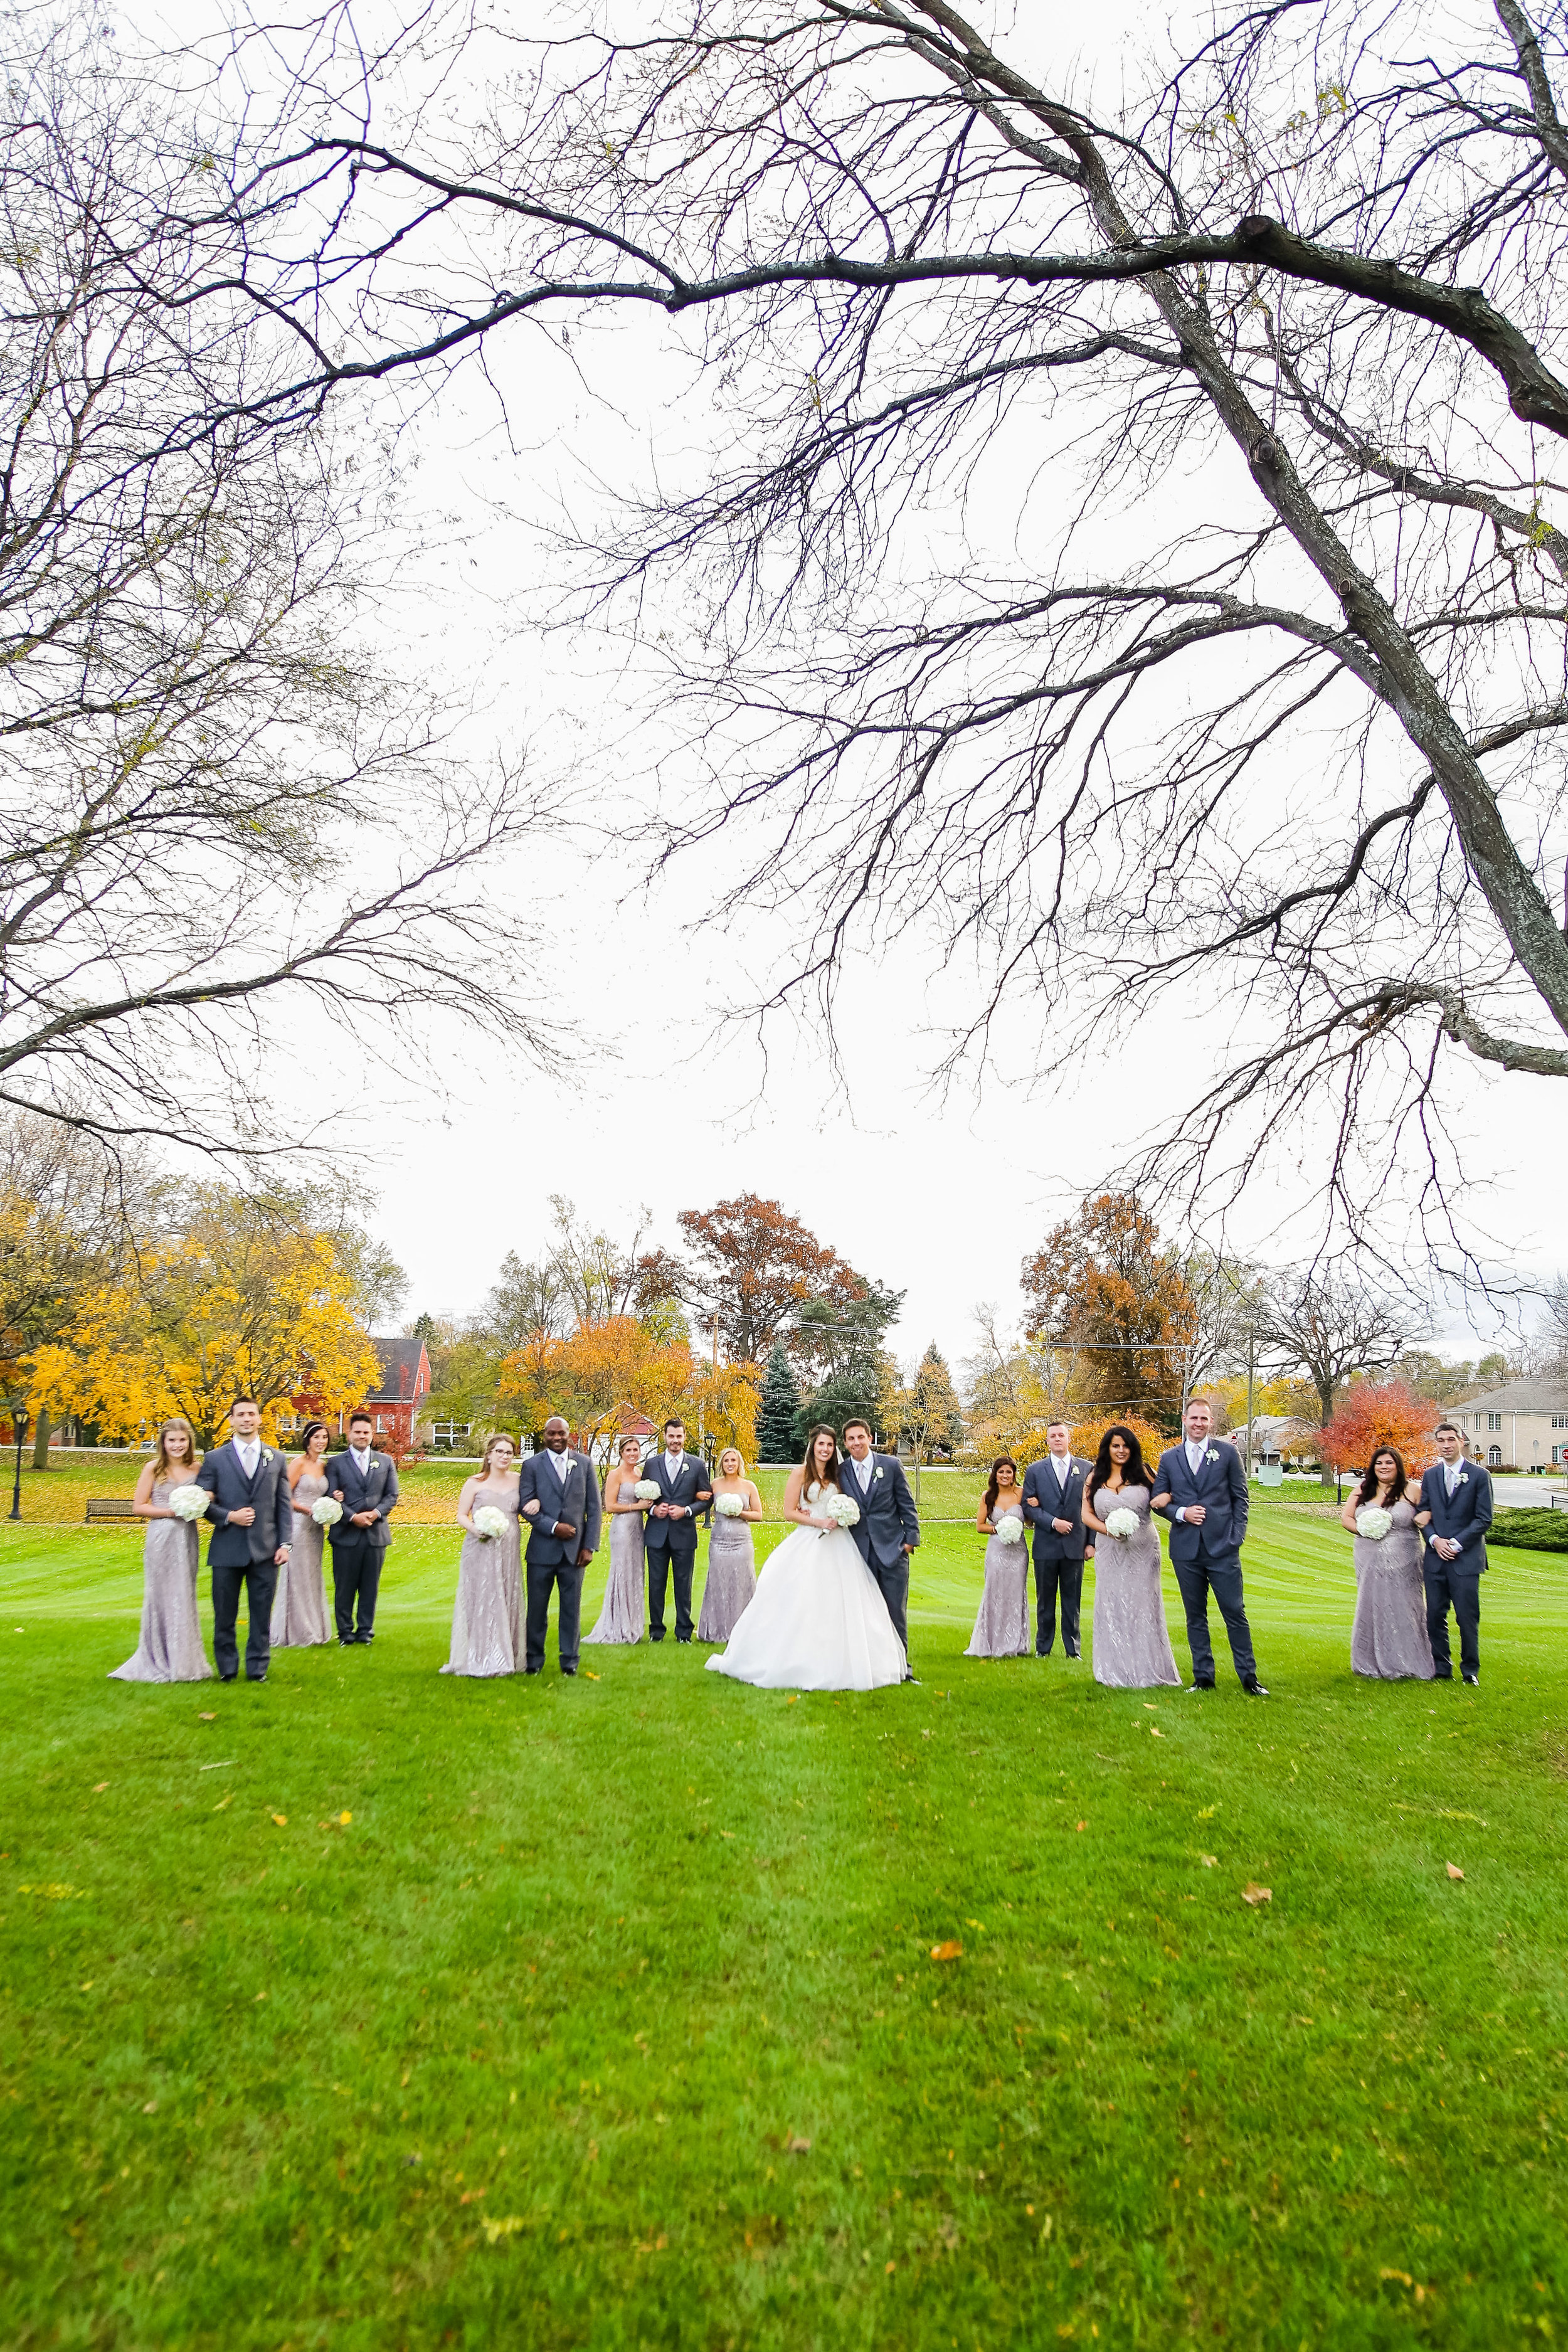 outdoor group shot with bridal party and bride and groom